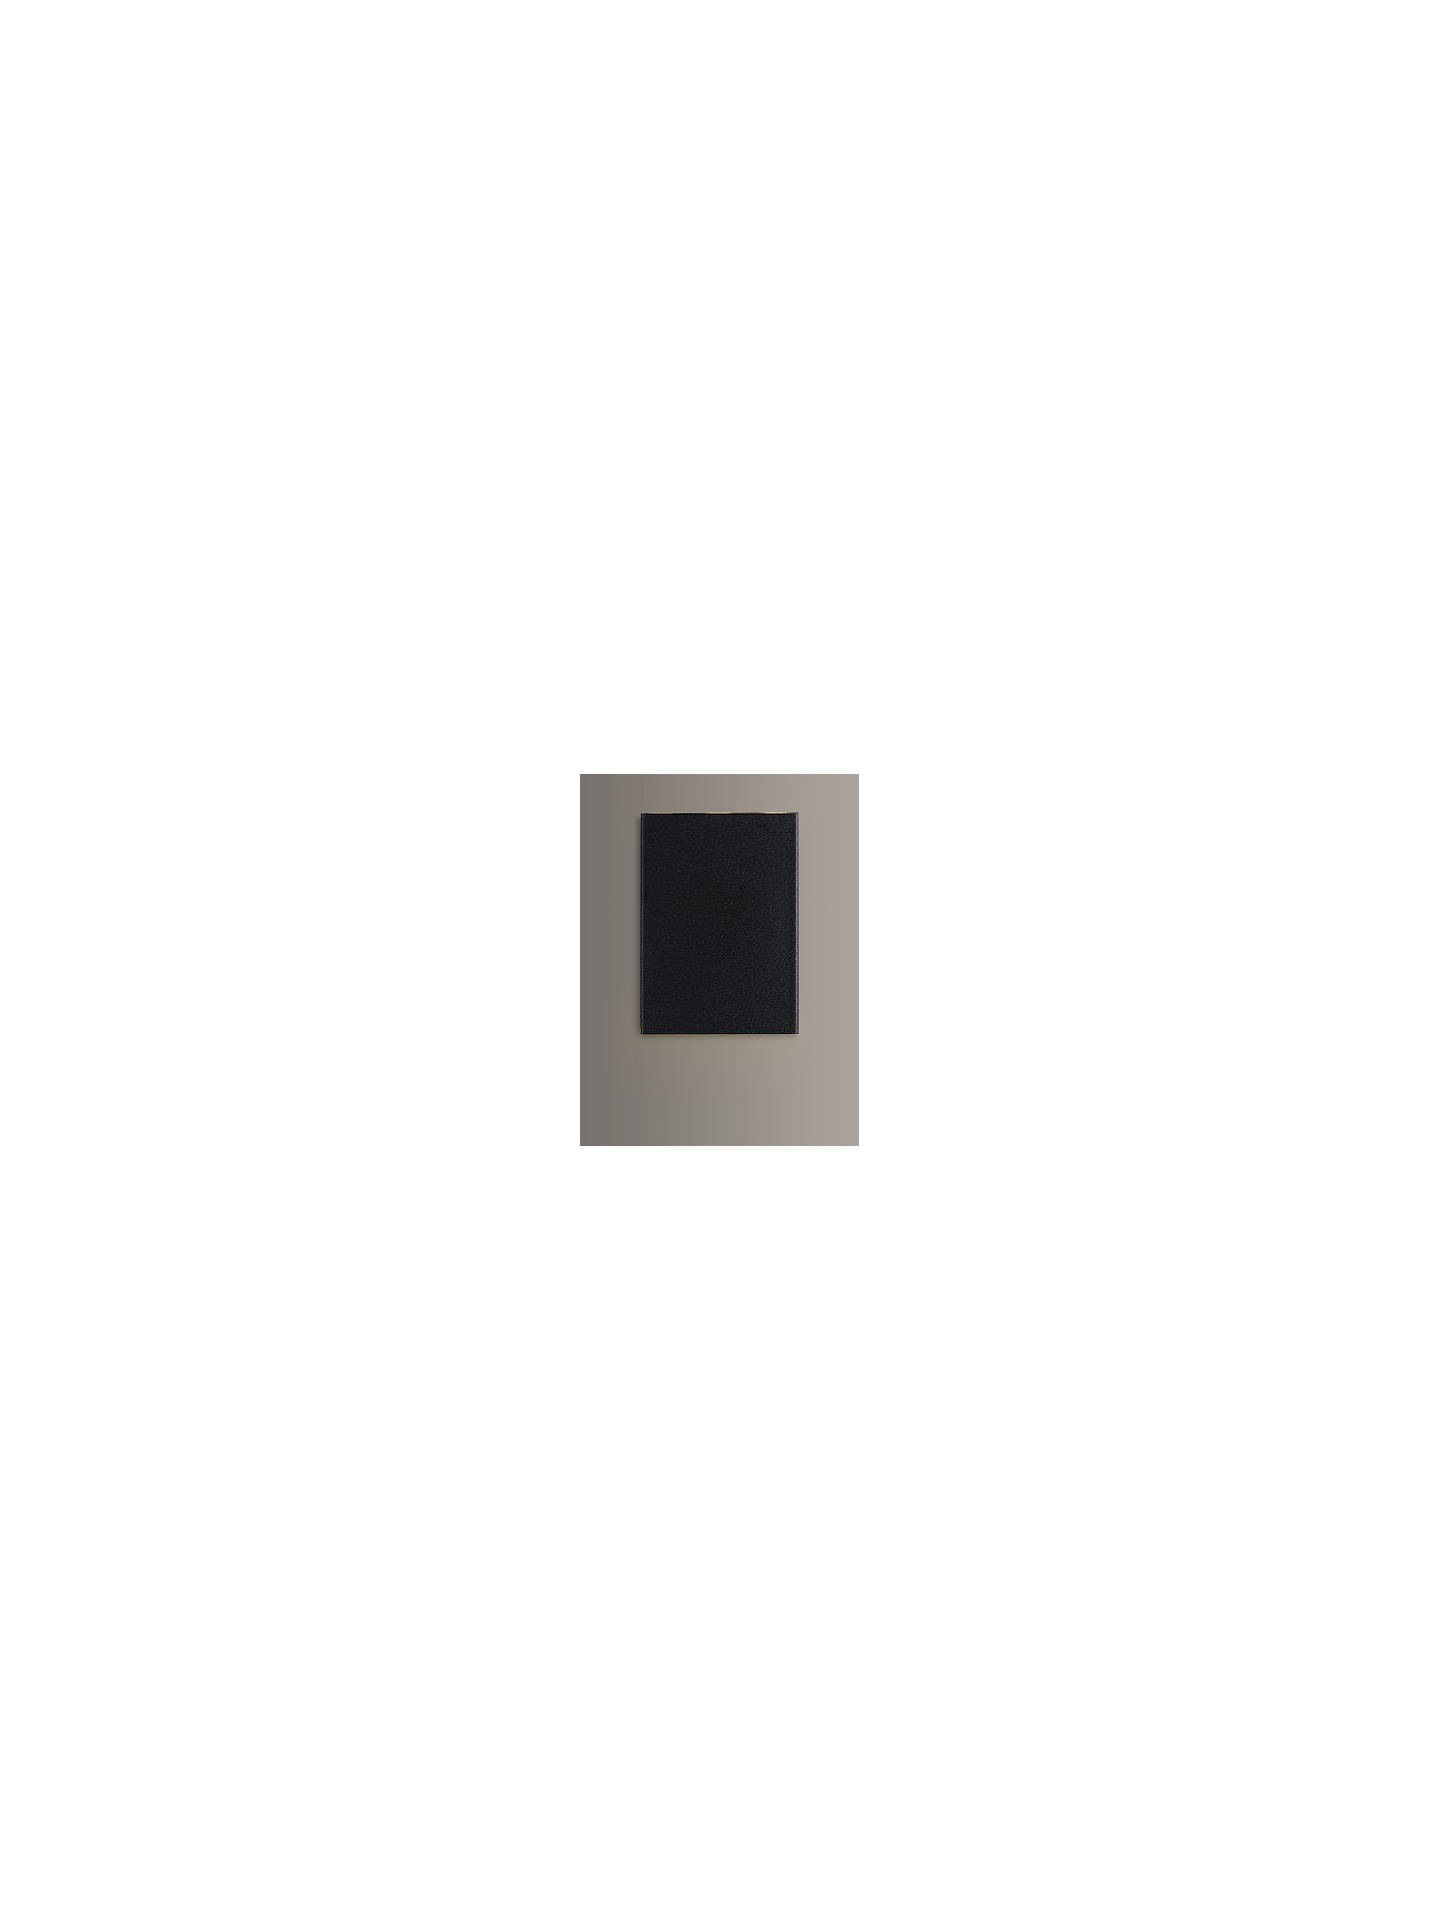 BuyNordlux Design For The People Fold LED Outdoor Wall Light, Black Online at johnlewis.com